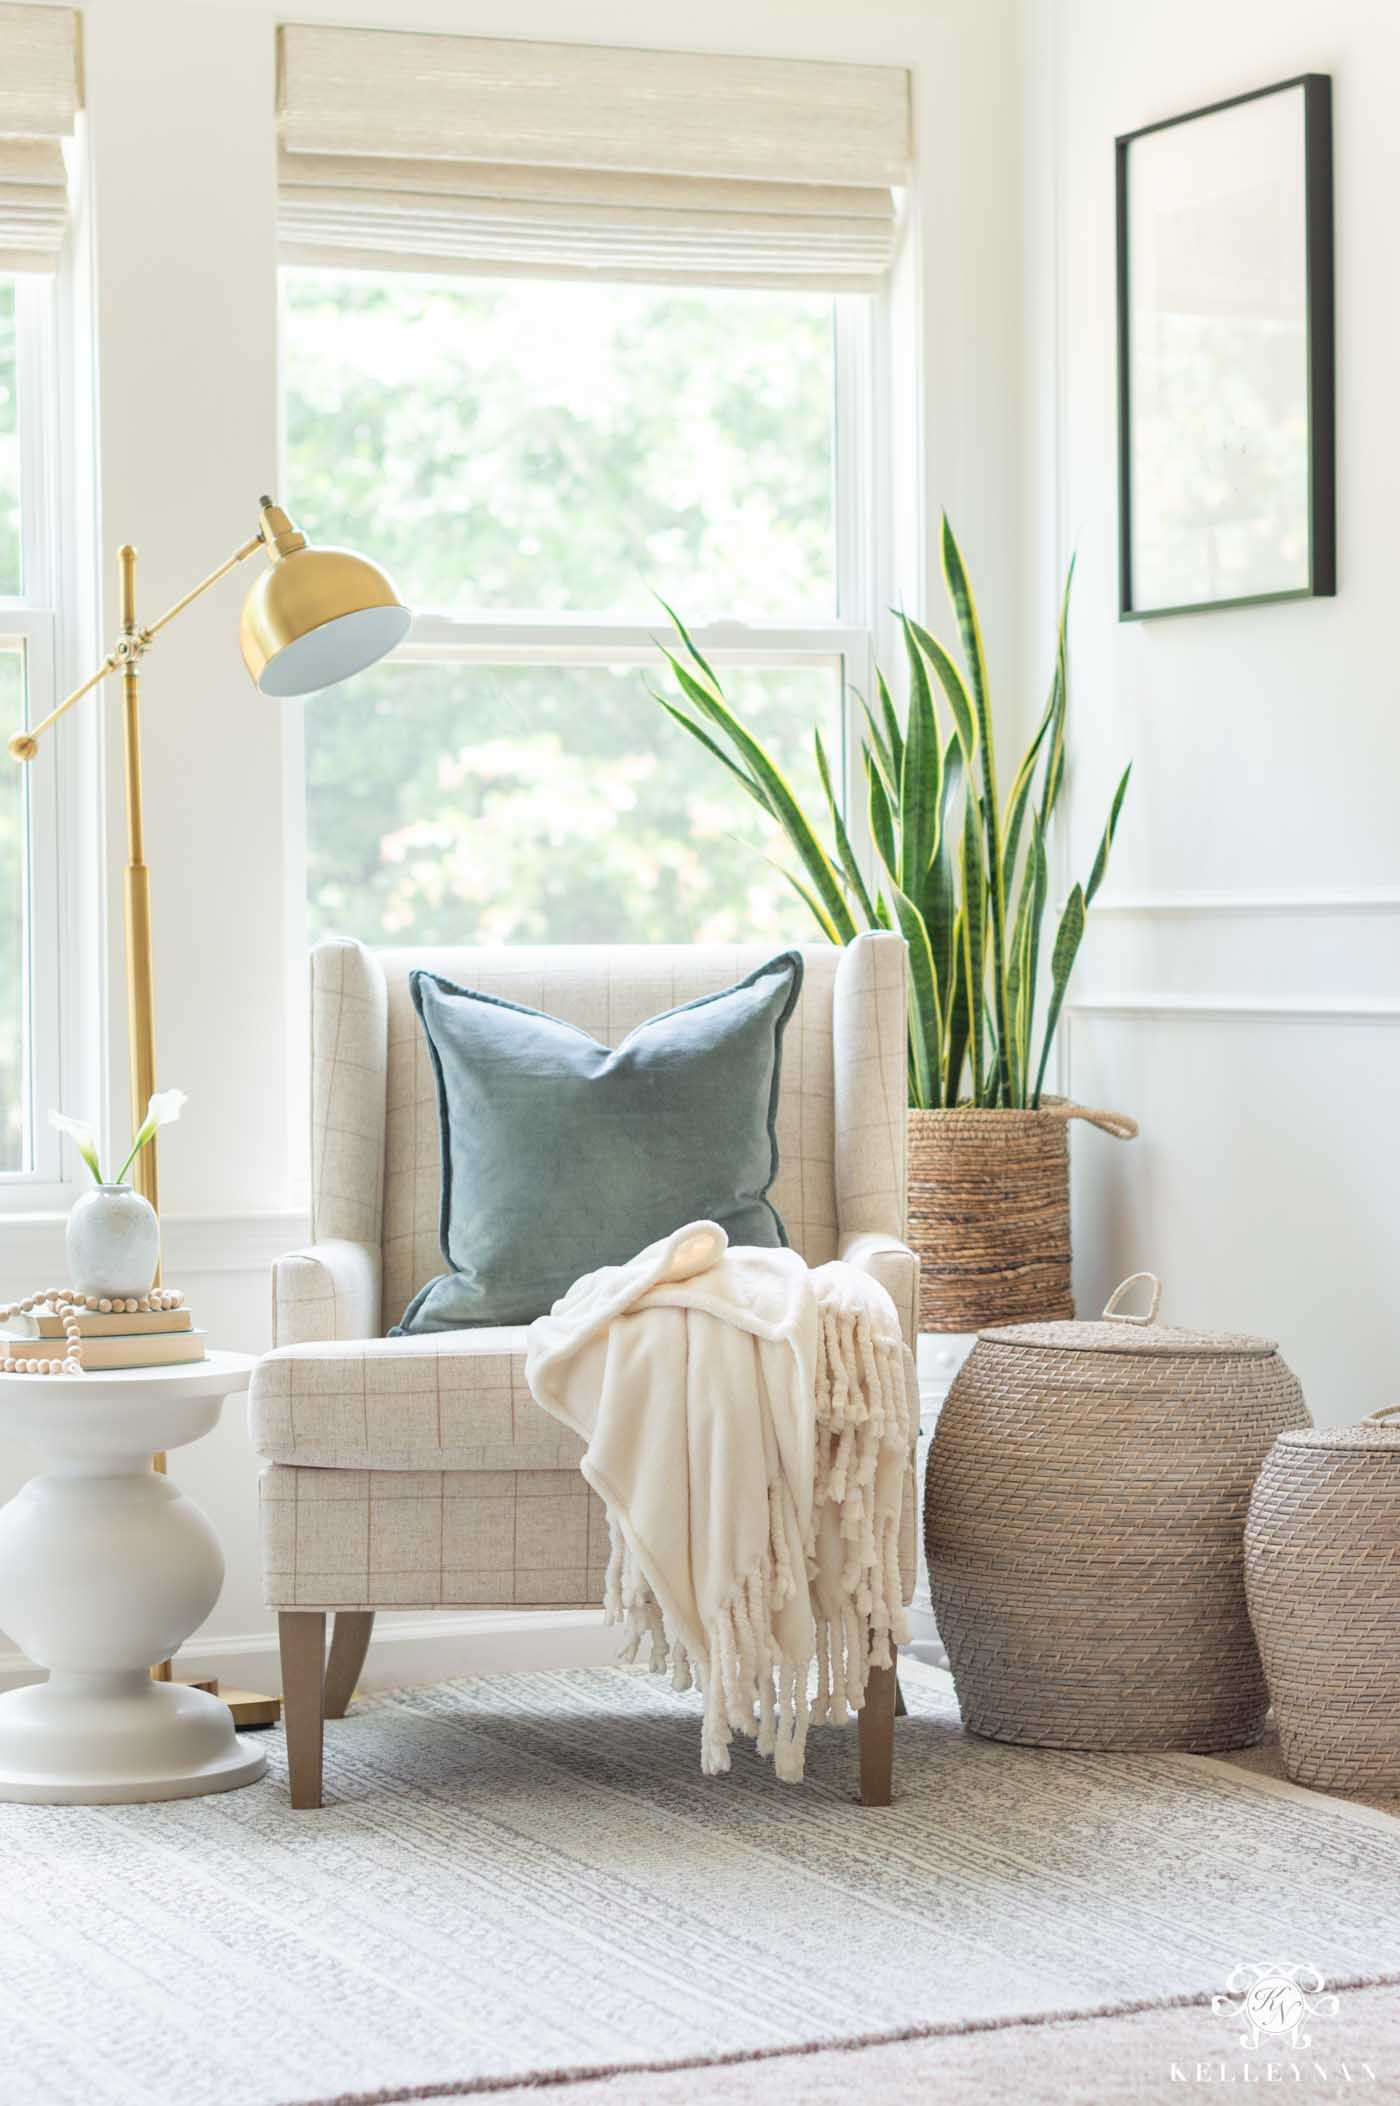 Coordinating The Master Bedroom Sitting Area To The Bedroom Kelley Nan In 2020 Bedroom With Sitting Area Master Bedroom Sitting Area Bedroom Trends